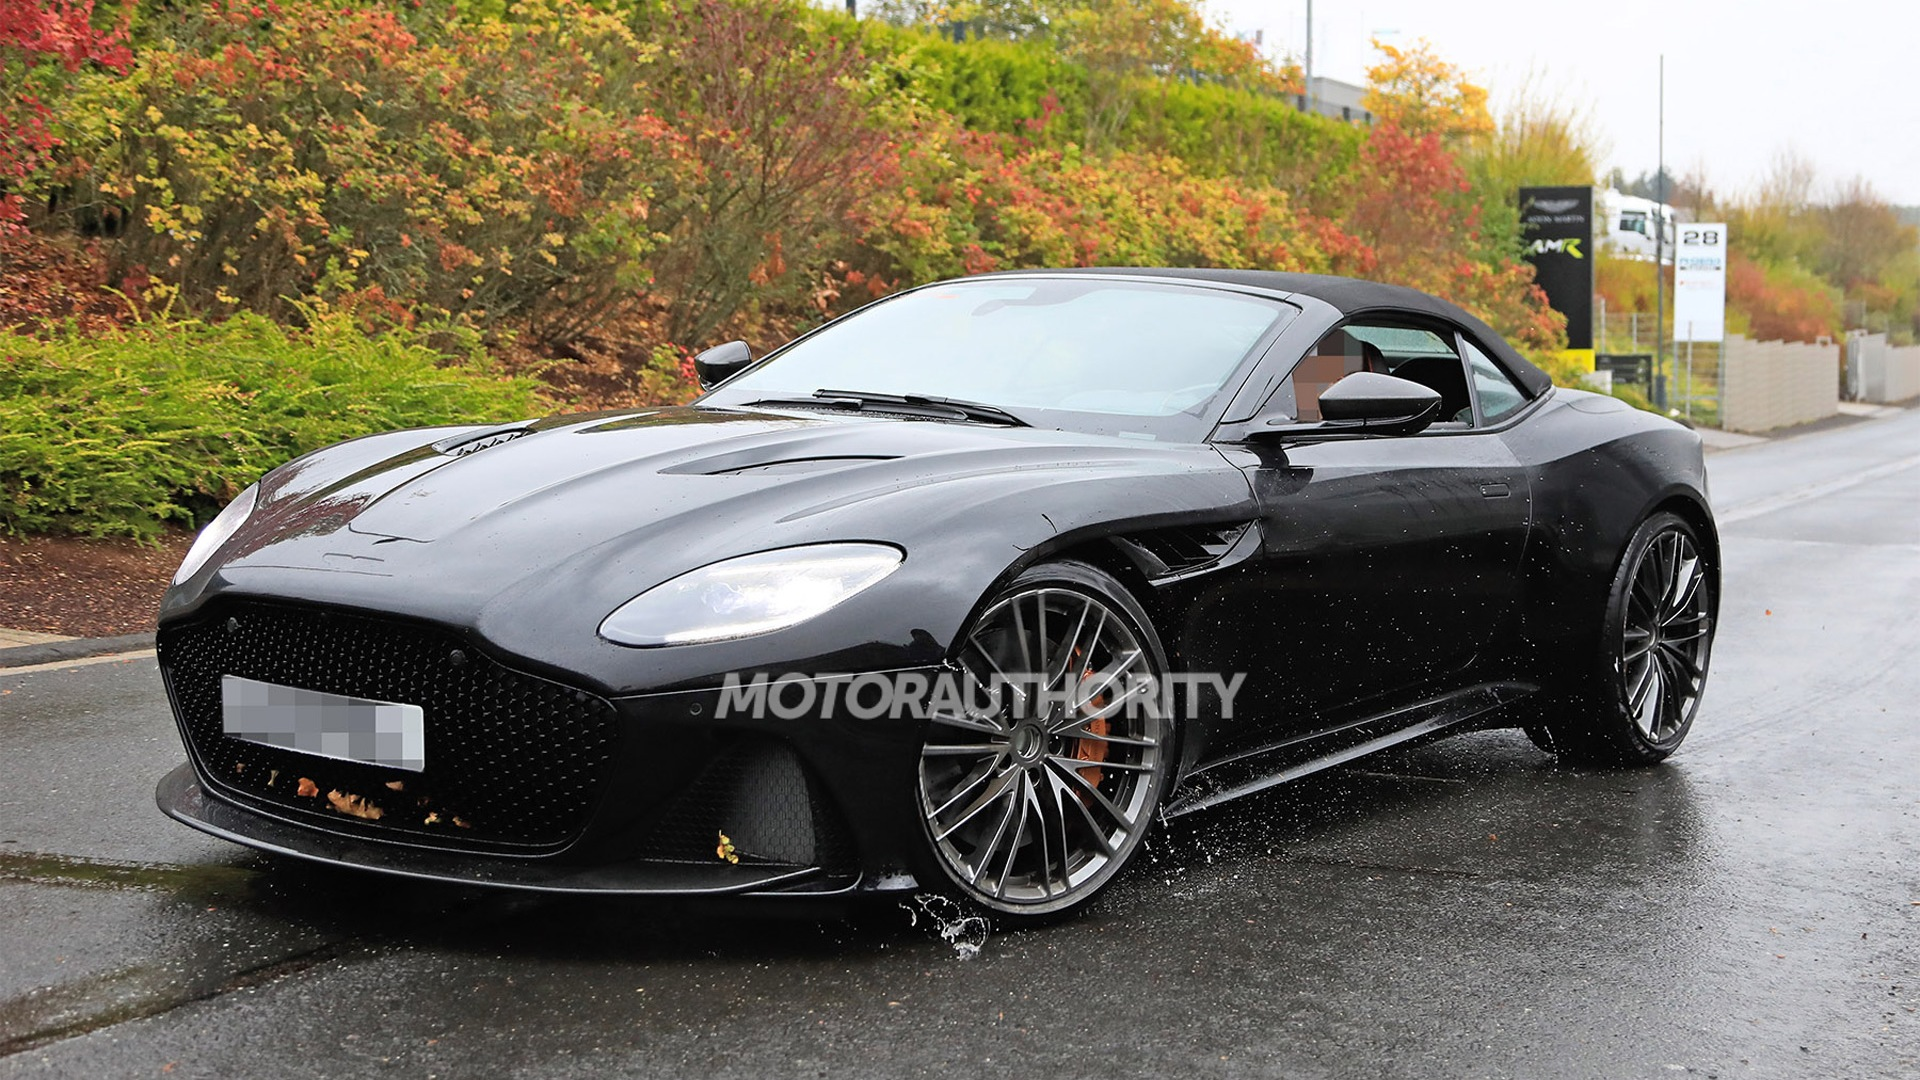 66 The Best 2020 Aston Martin Vanquish Exterior and Interior